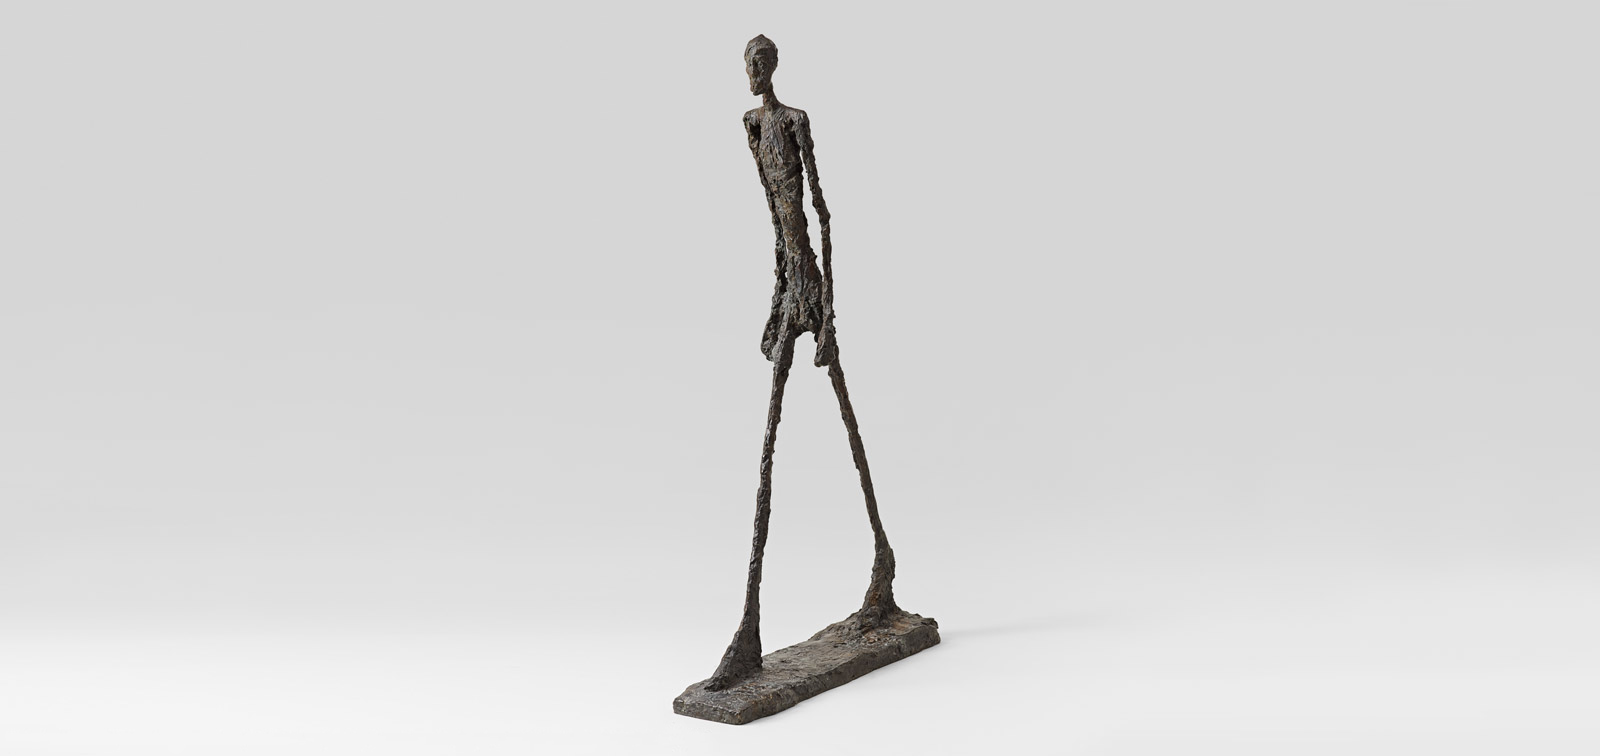 <em>COPIA DE - The other side in Giacometti's life: his home country</em>